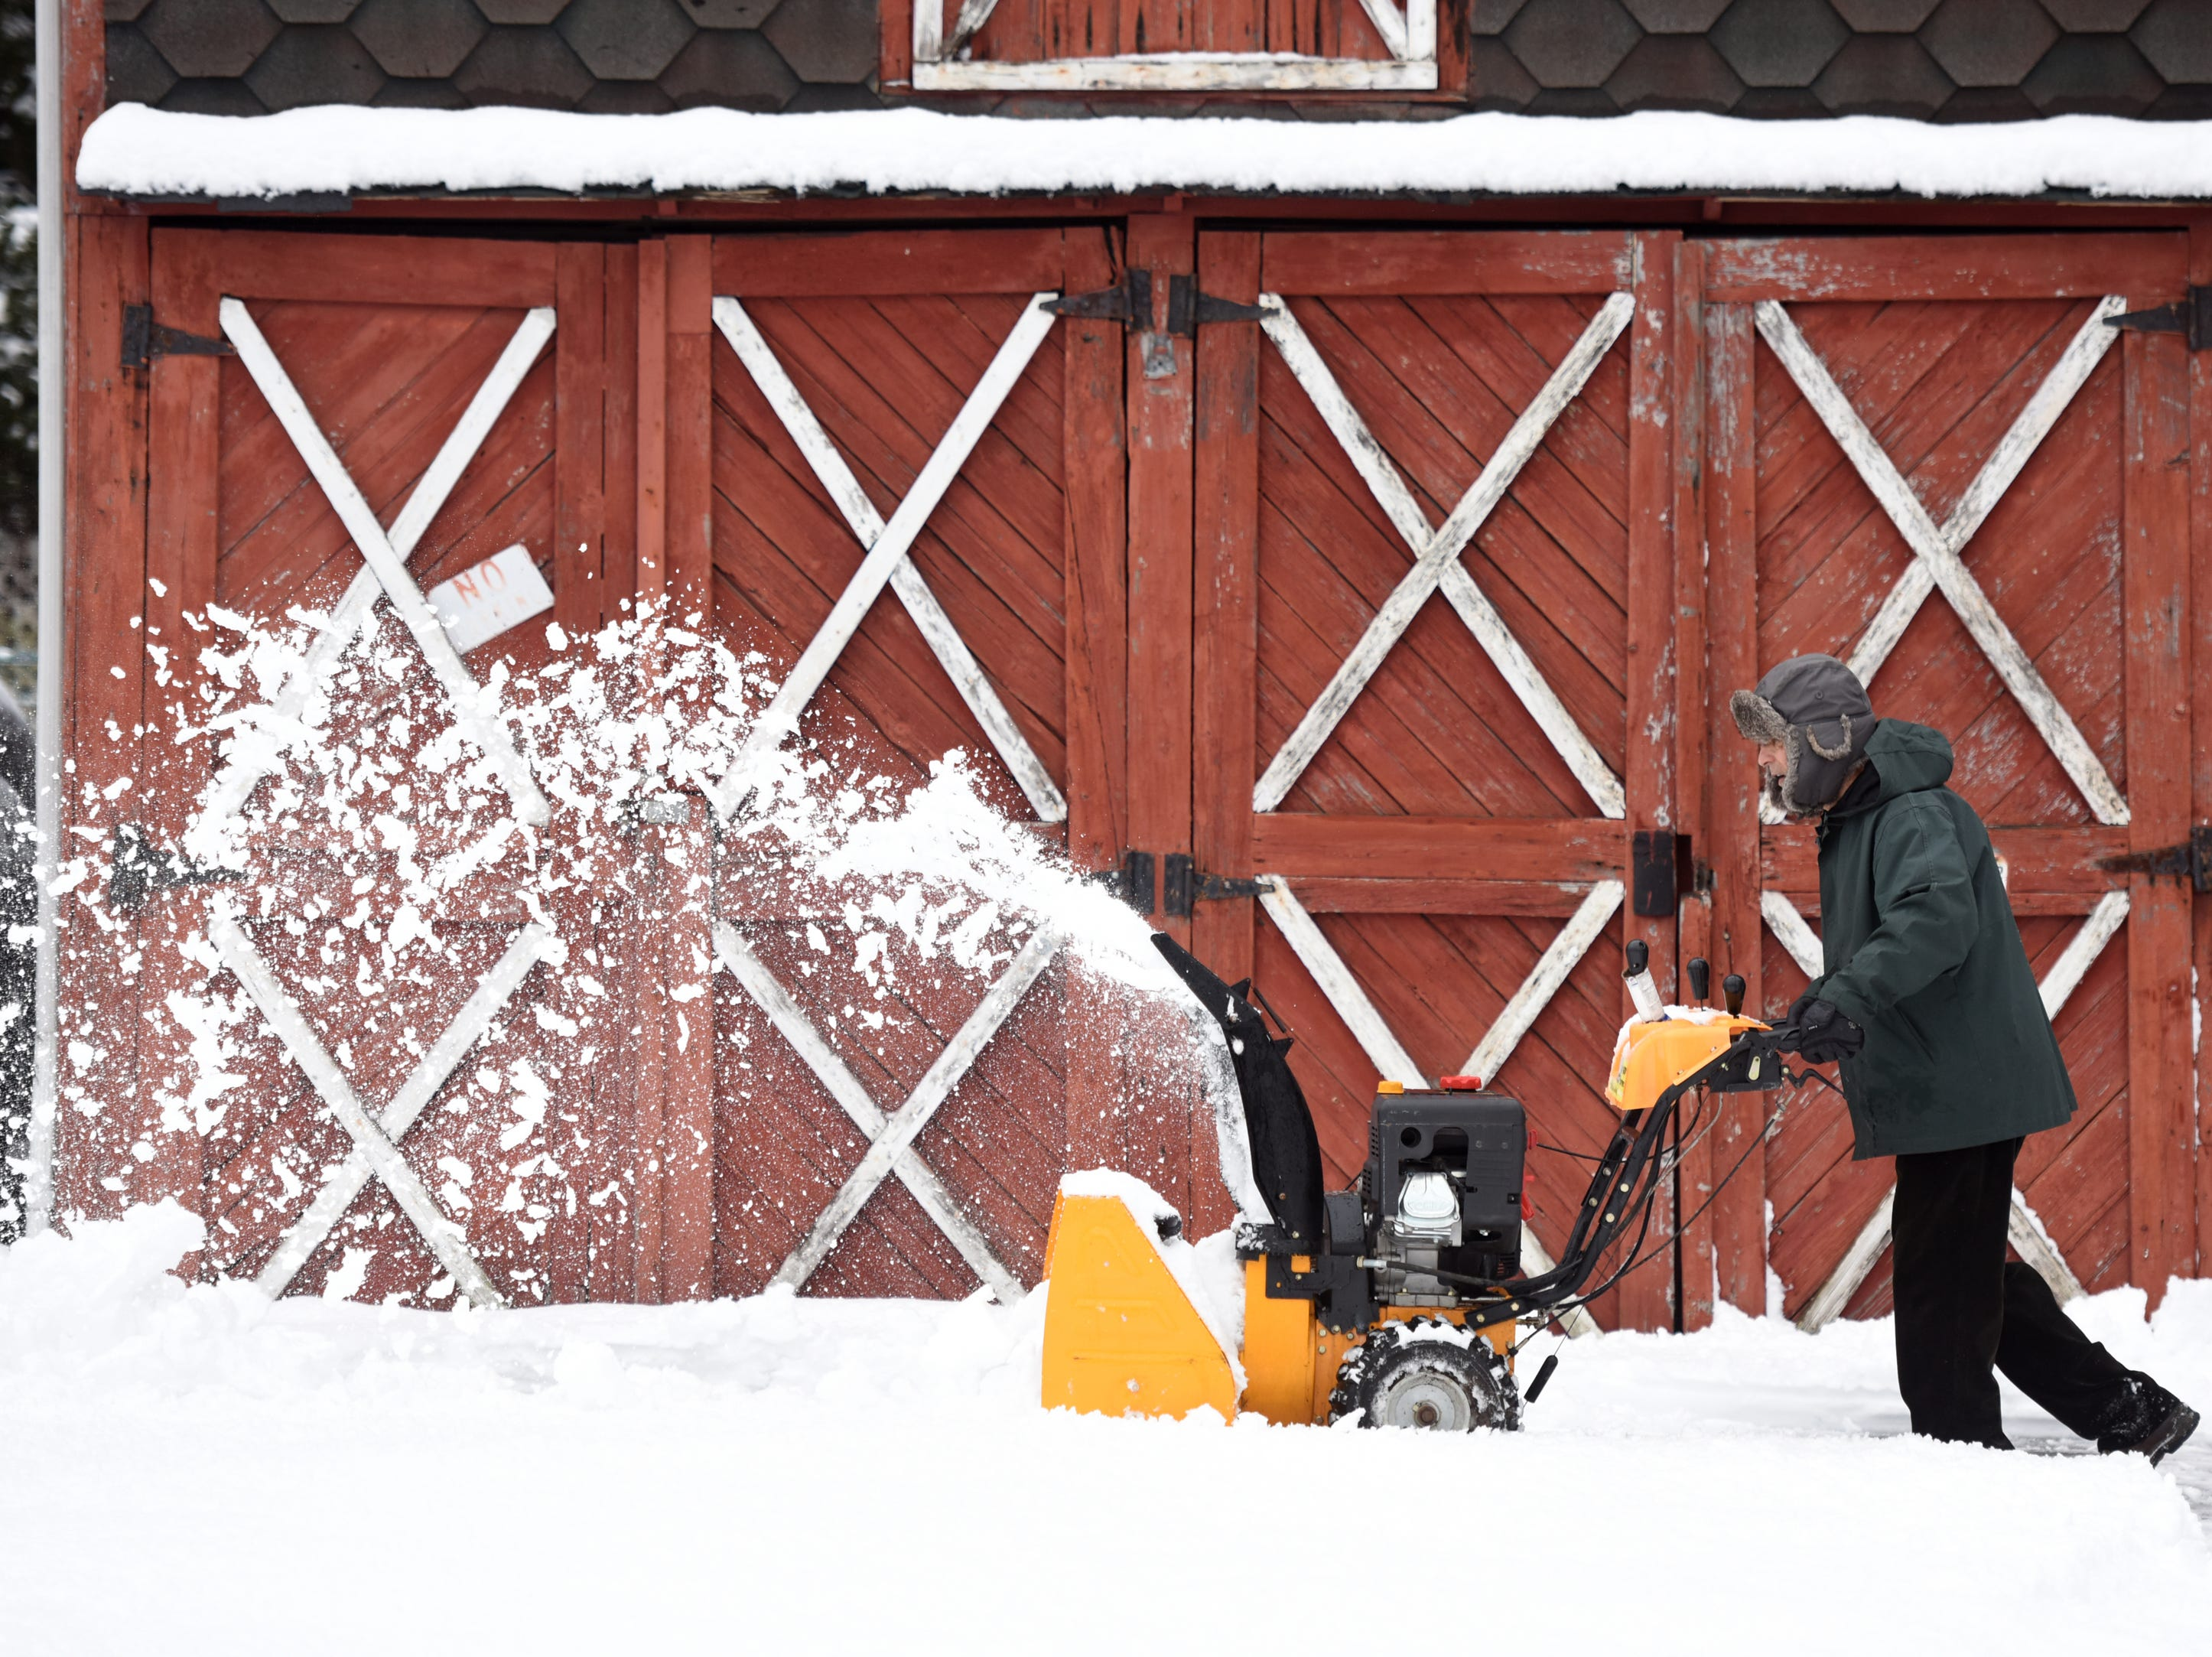 Richard Yelbasi removes snow from his driveway on Elm St. in Clifton on Monday, March 4, 2019.